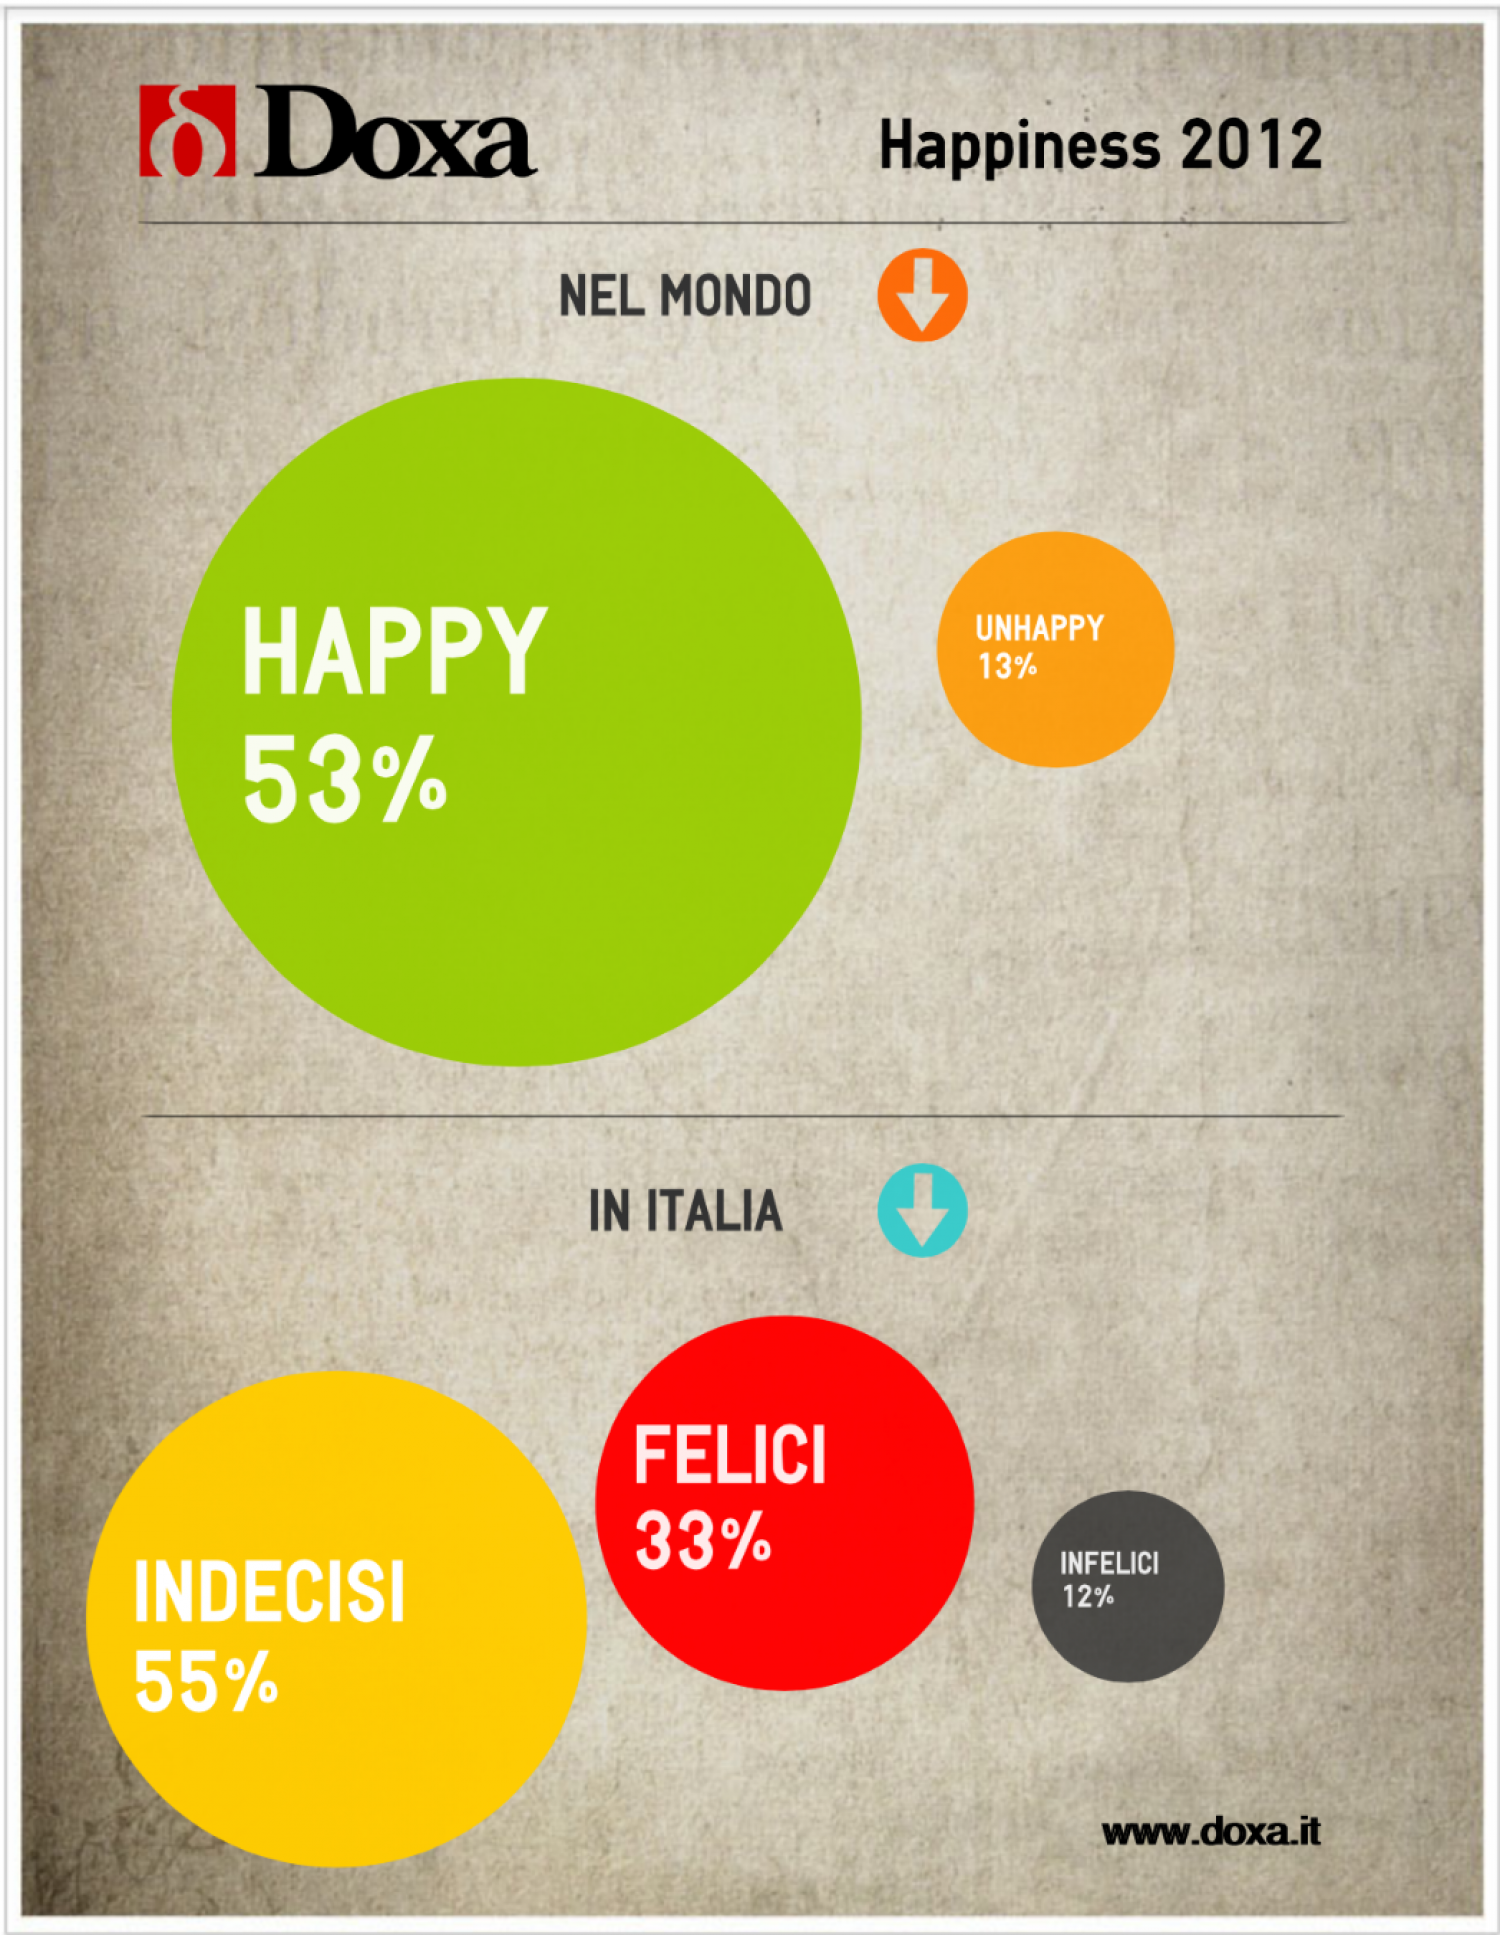 Doxa Happiness 2012 Infographic